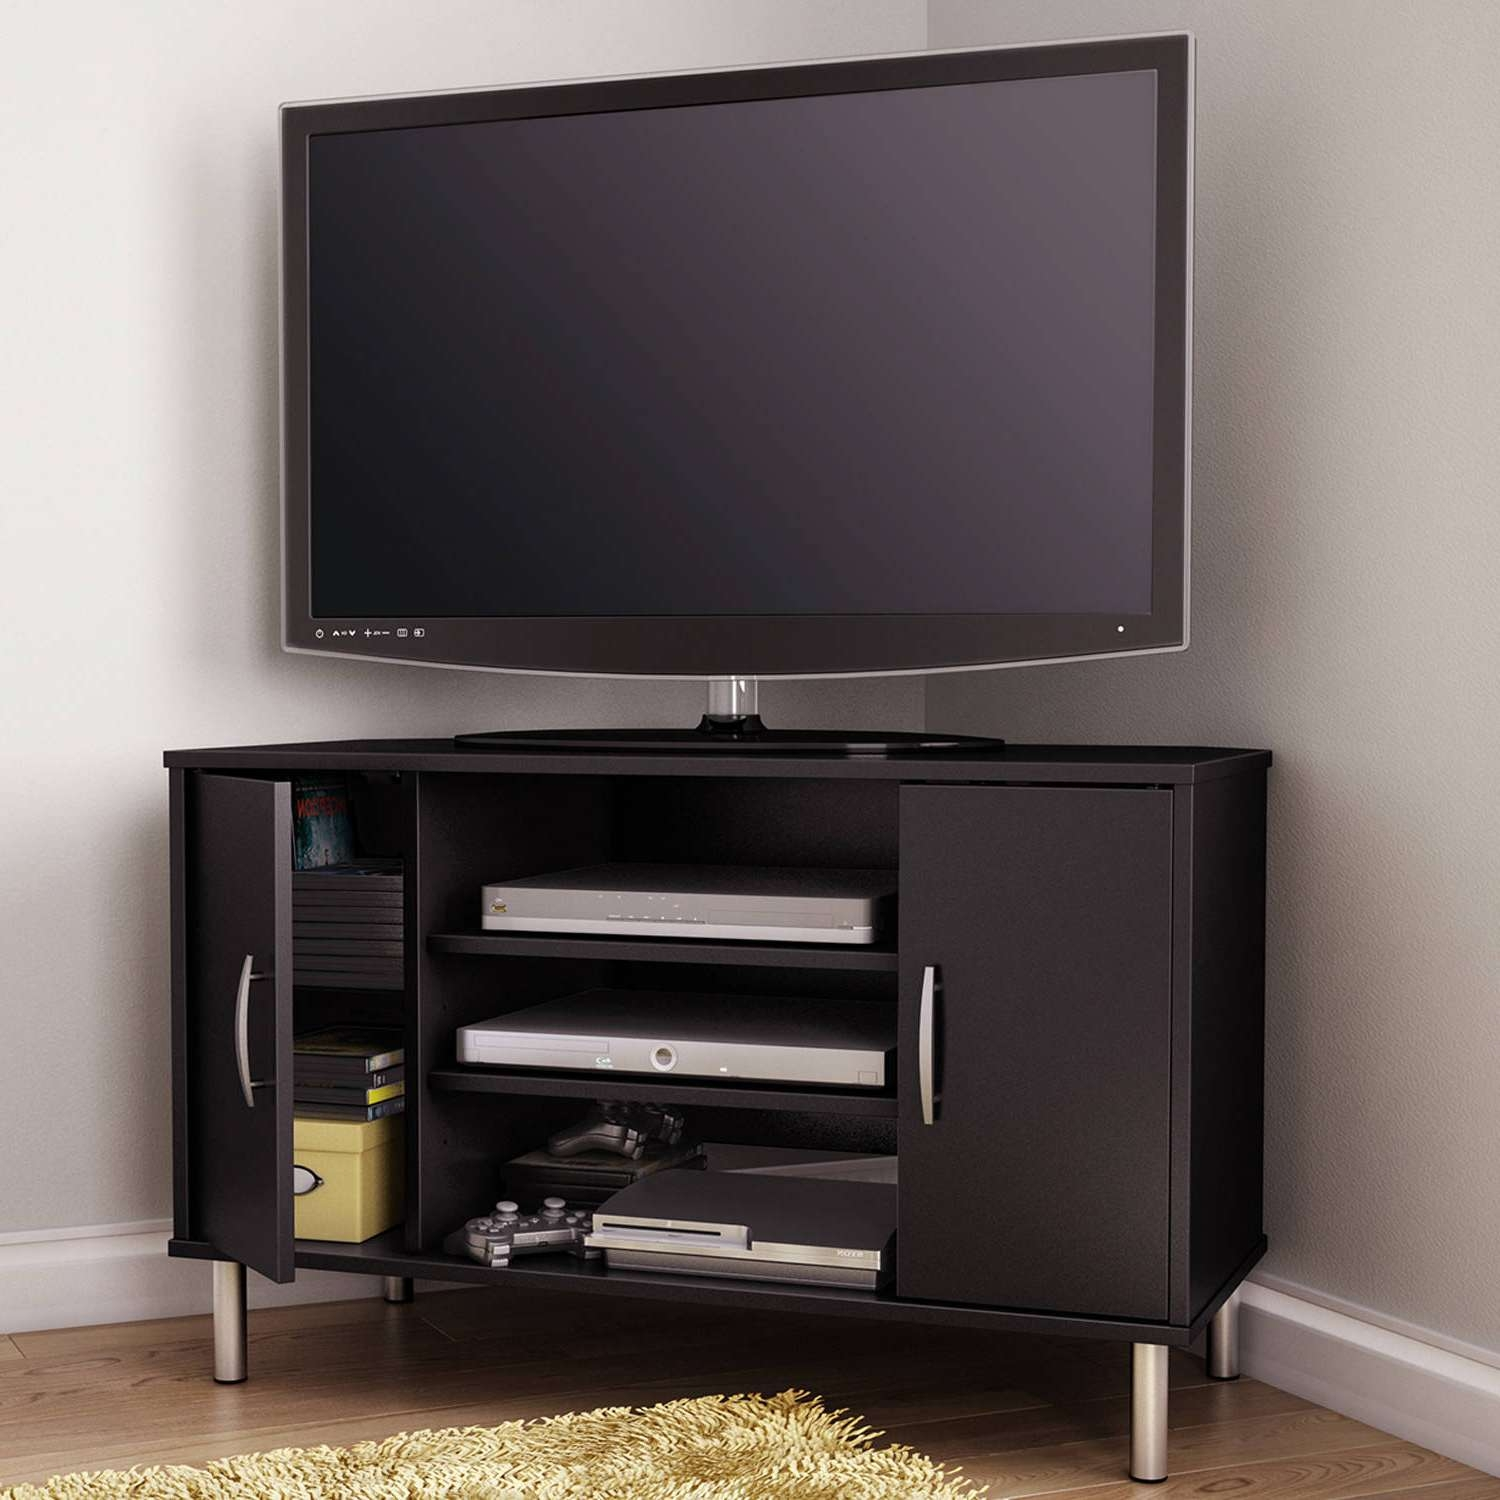 Storage Cabinets Ideas : Corner Tv Cabinet Beech Choosing The Throughout Beech Tv Stands (View 9 of 15)